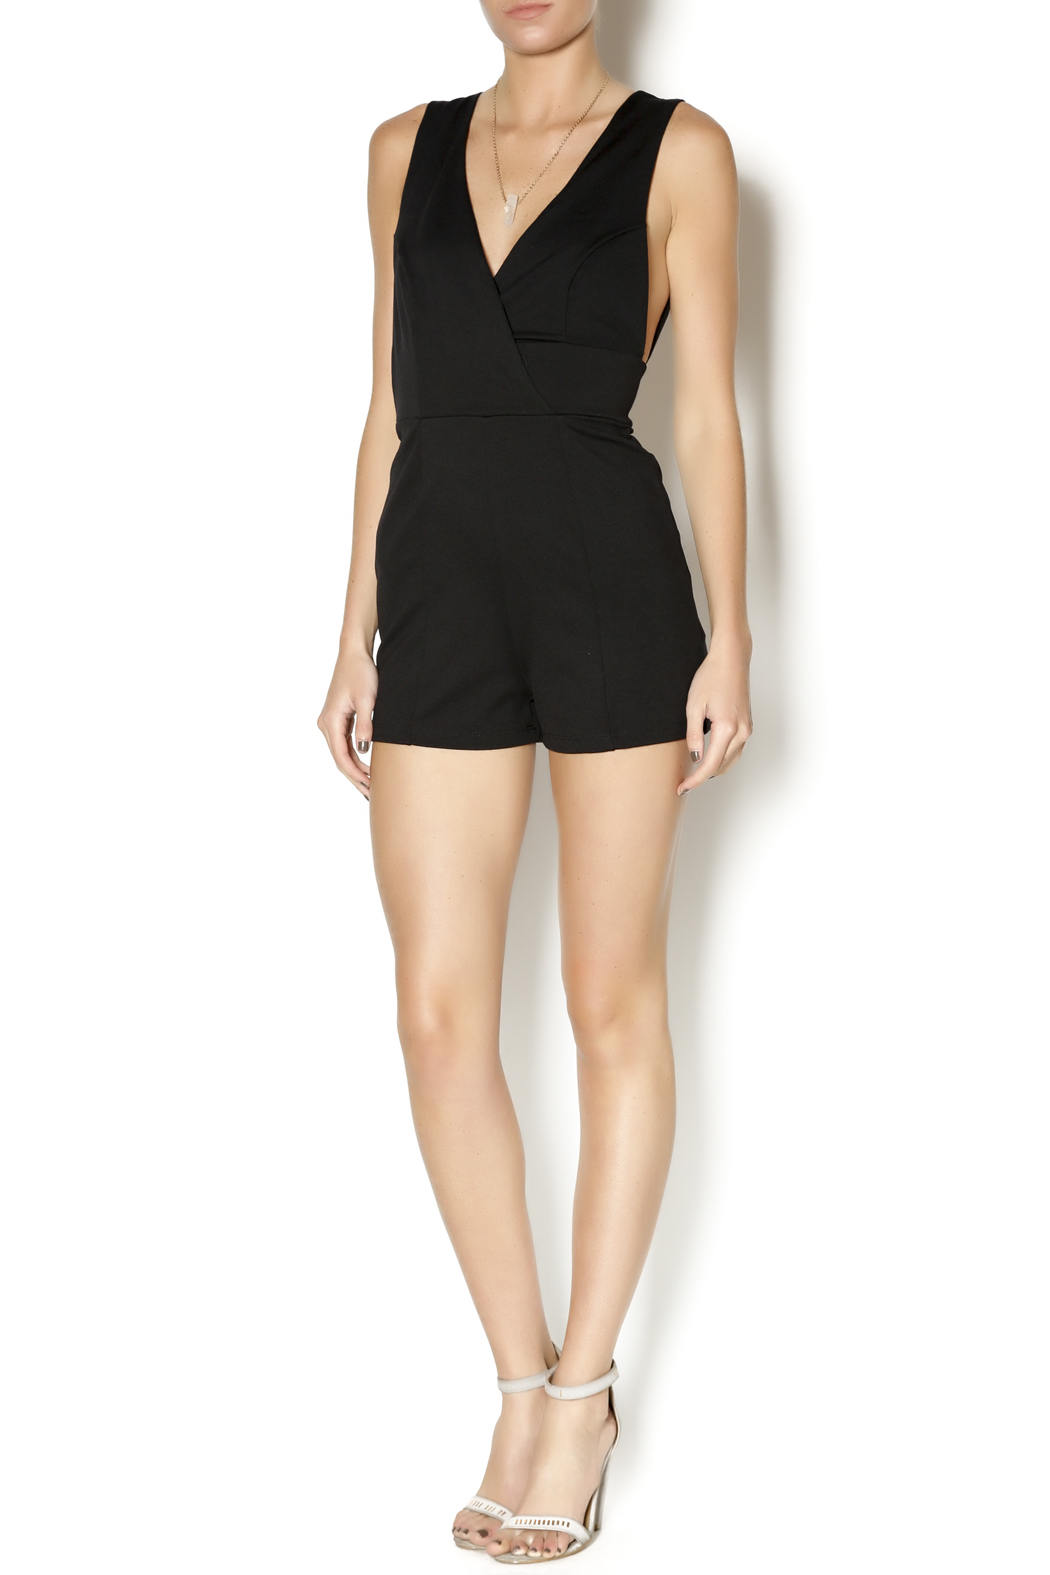 Mystic Sleeveless Black Romper From New York City By Dor L